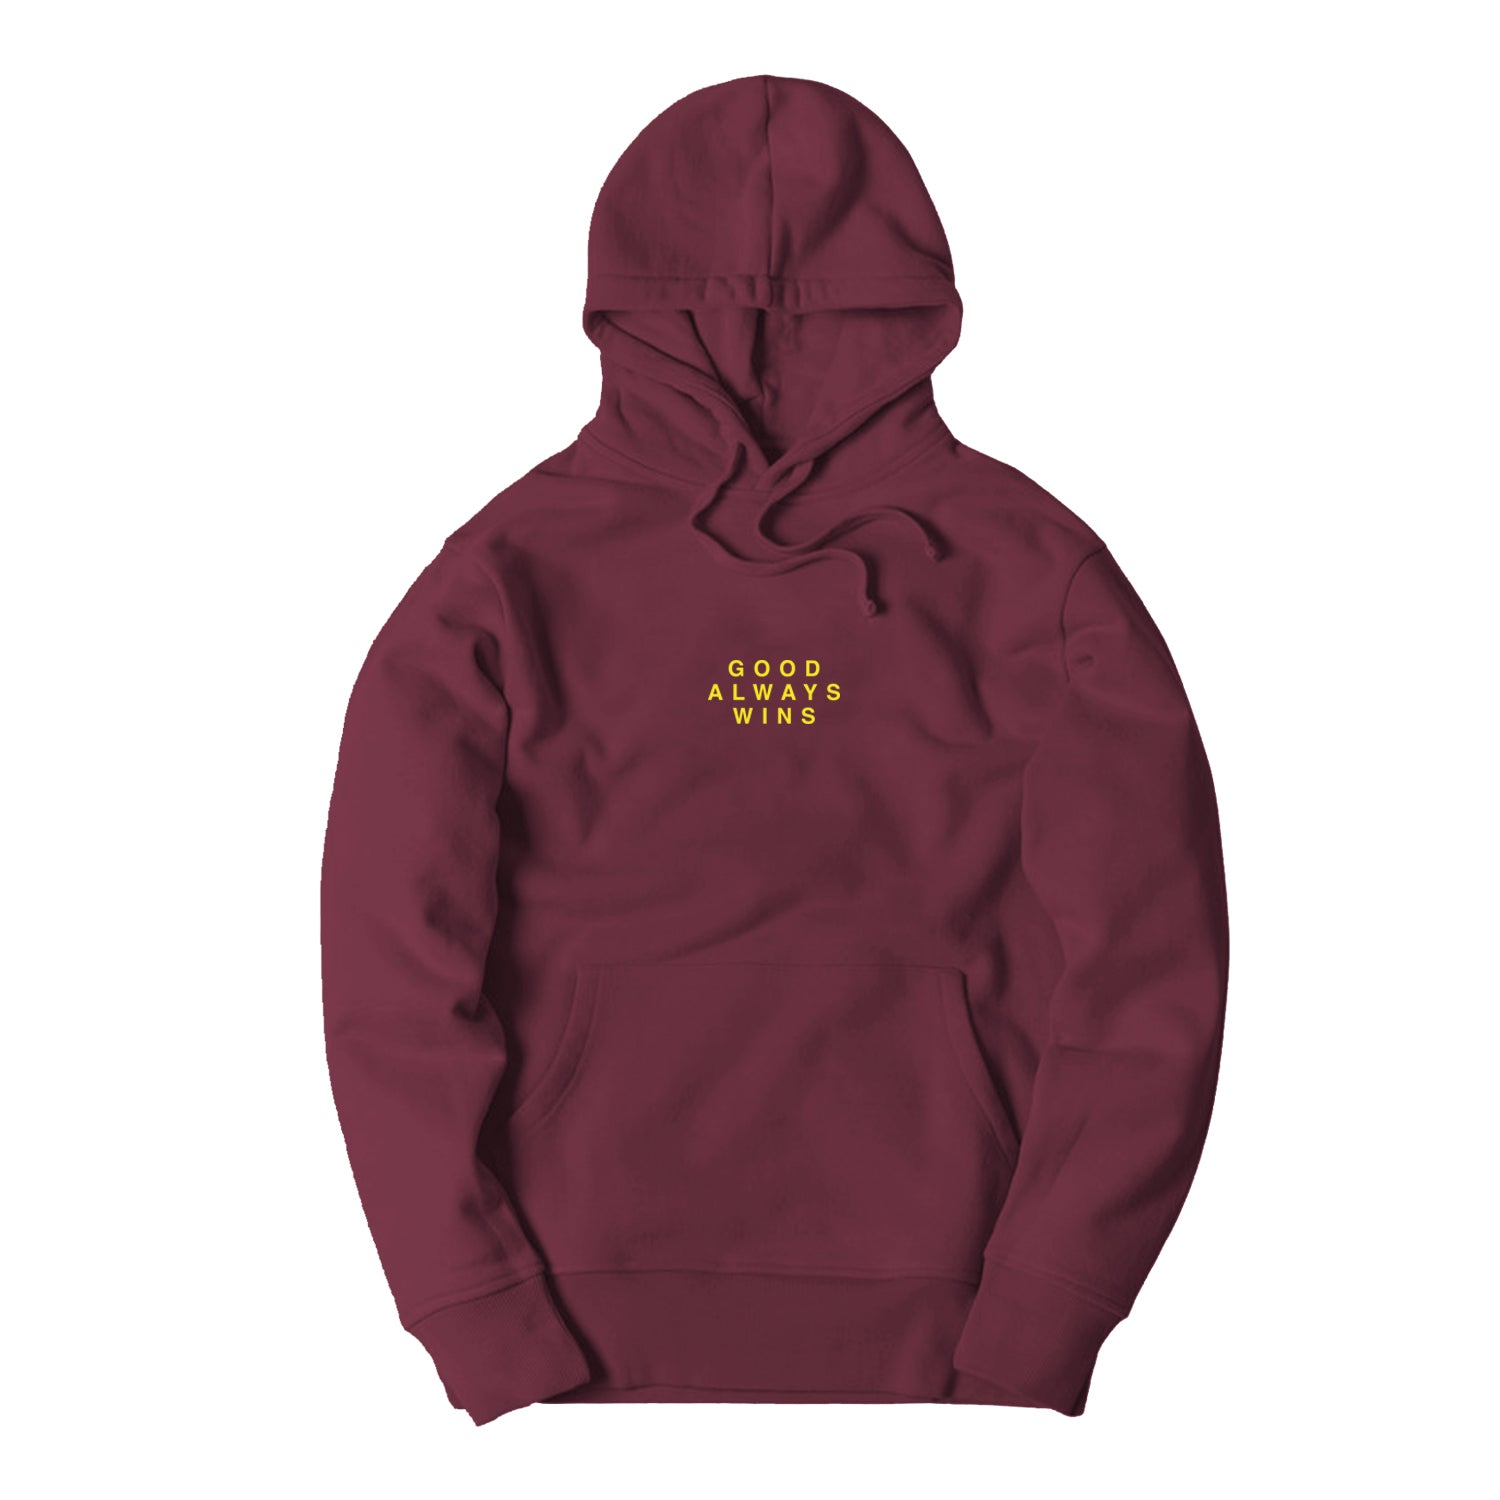 Good Always Wins Hoodie [Maroon]